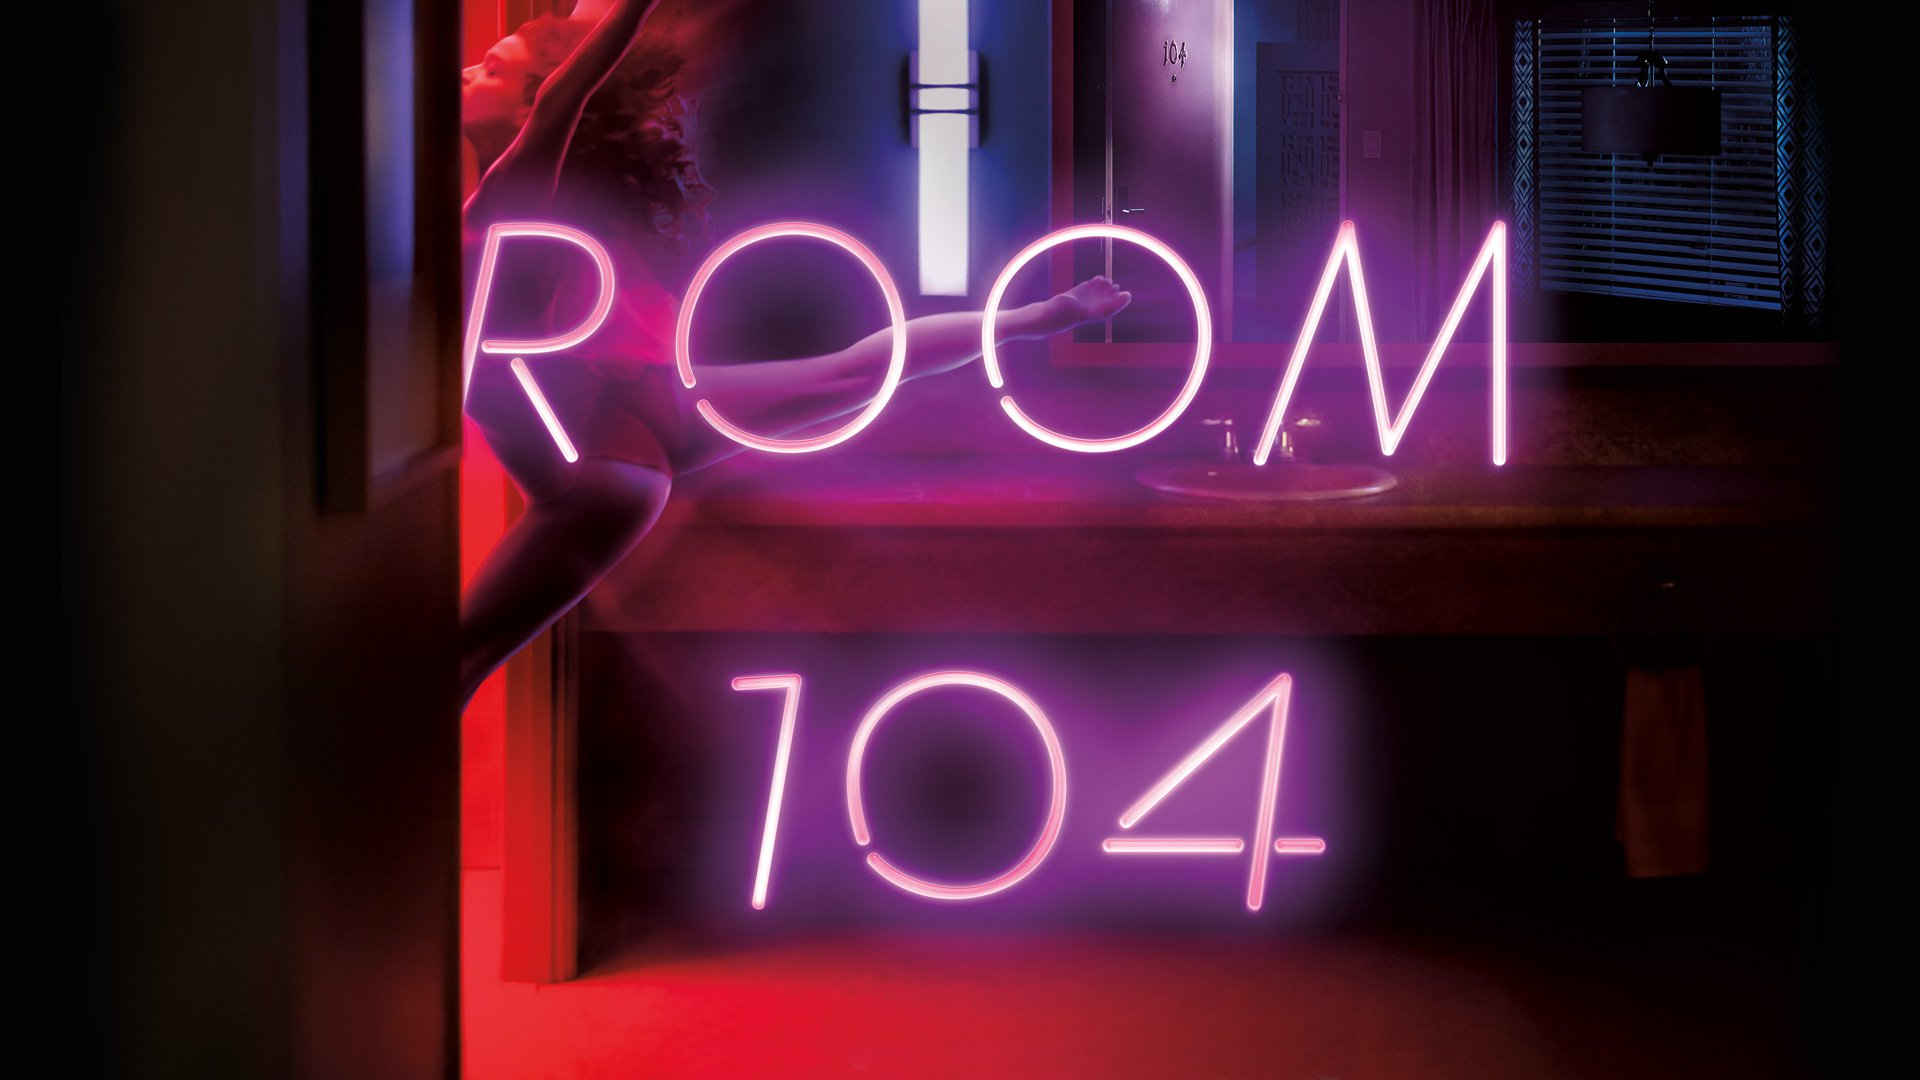 Fourth and final season of Room 104 to premiere at HBO near the end of July